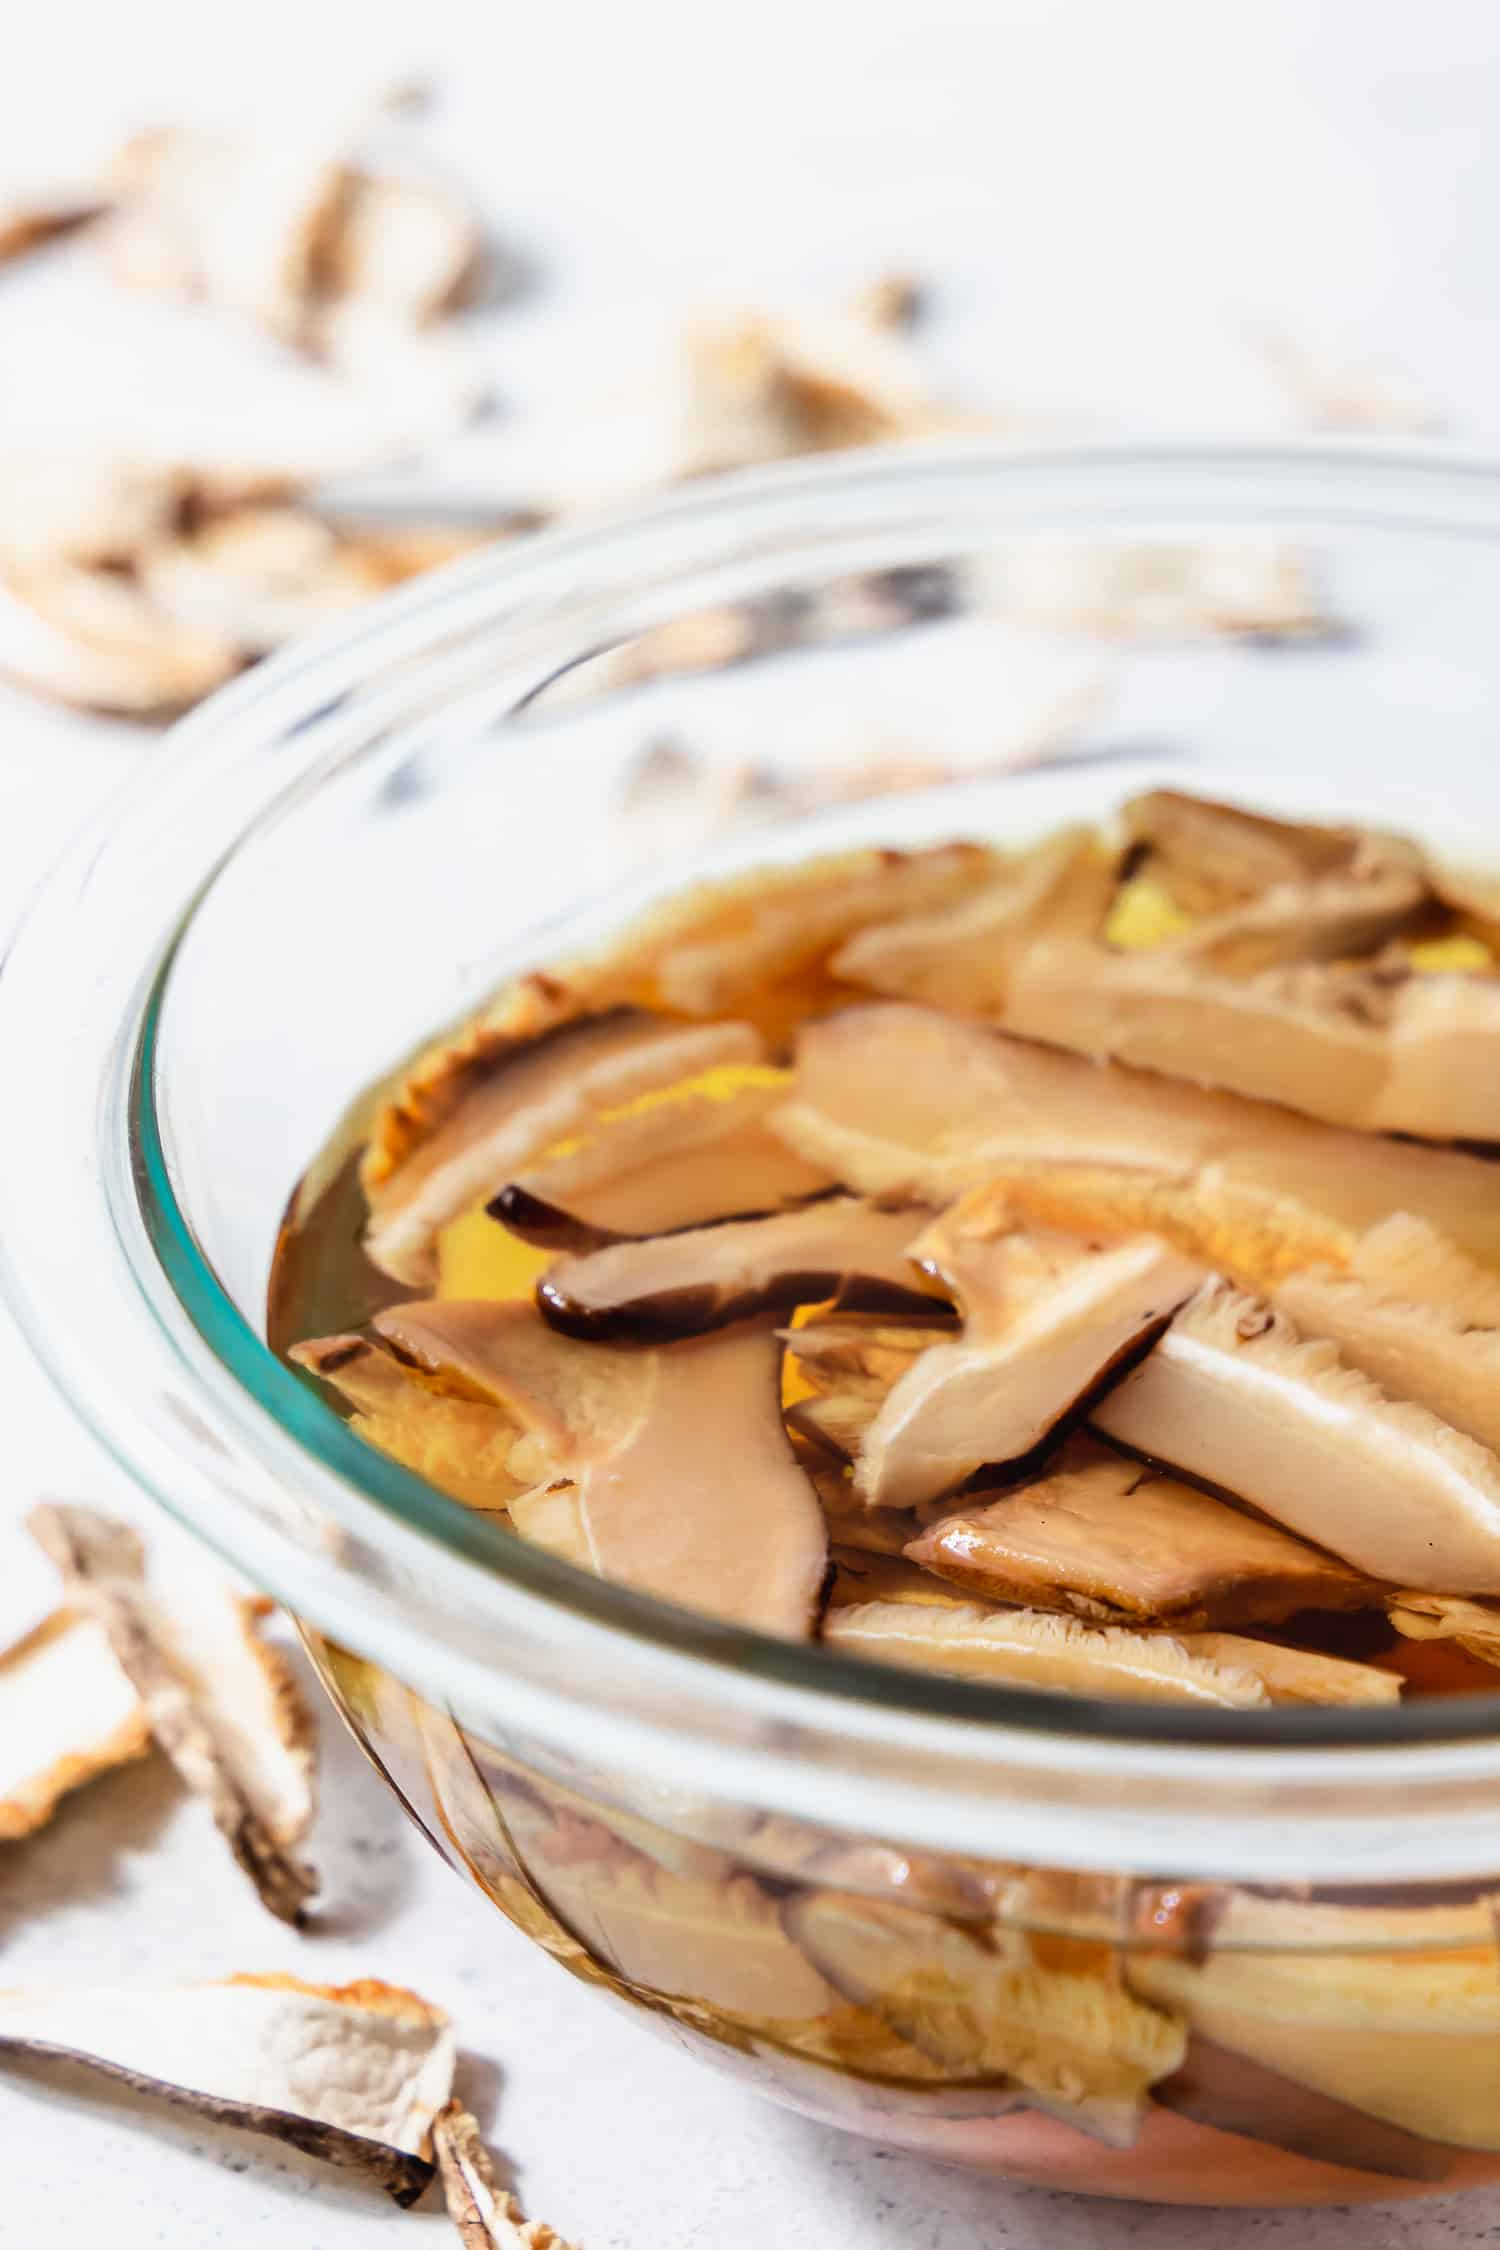 bowl of soaked dried mushrooms